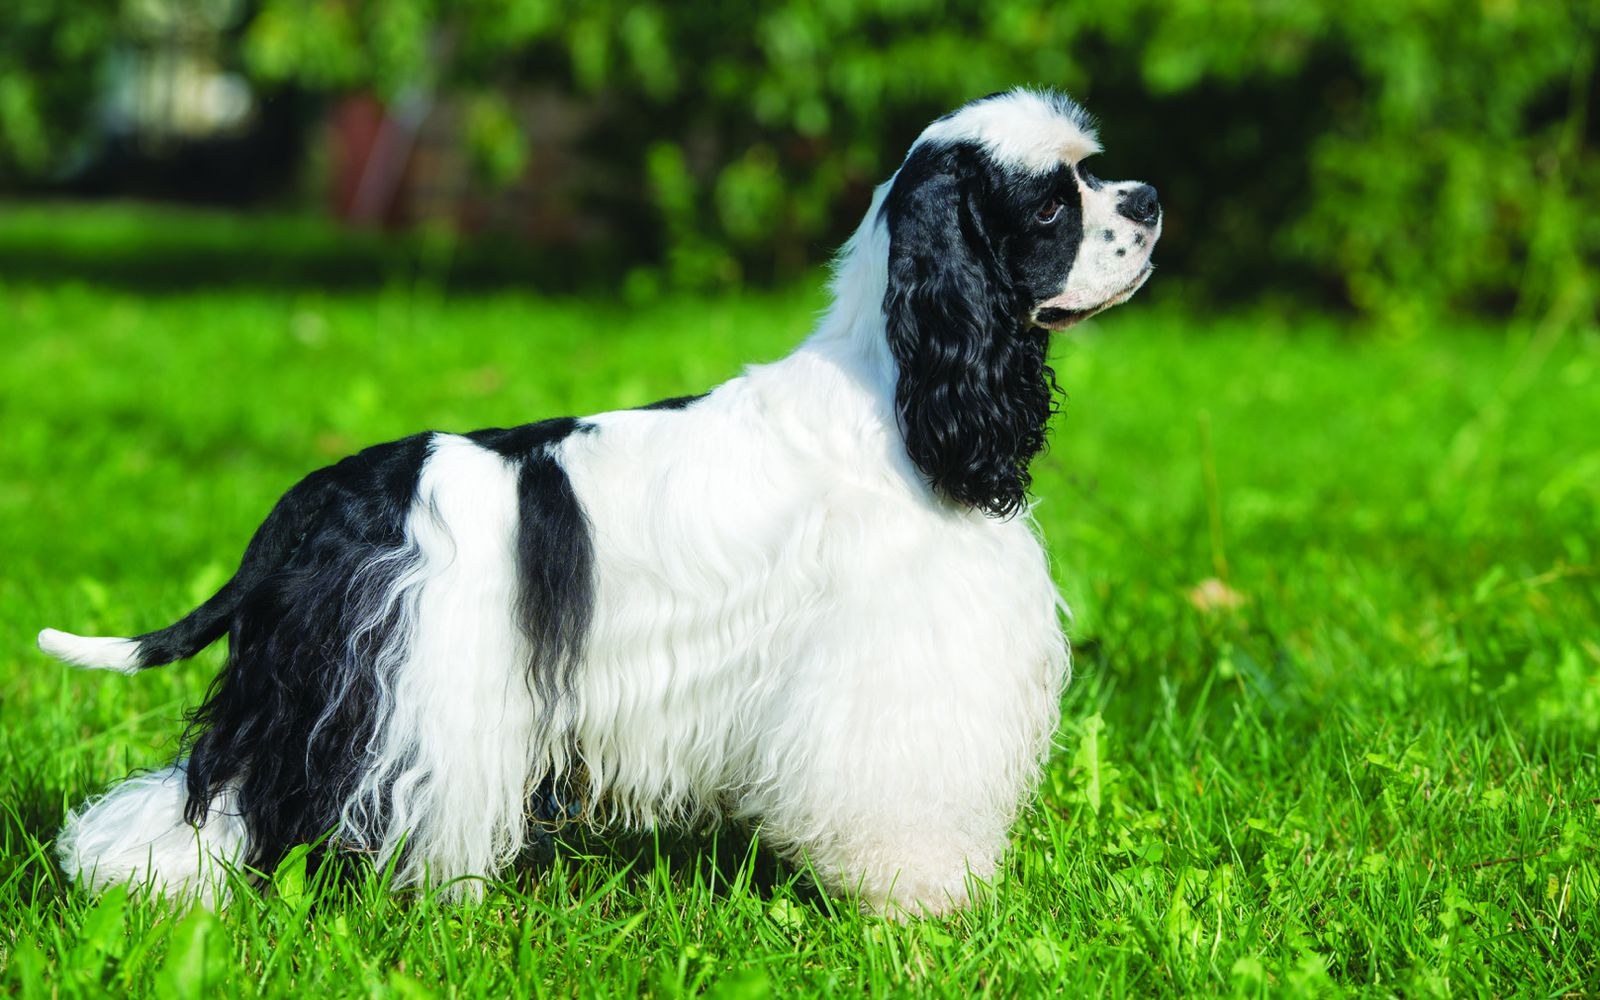 American Cocker Spaniel - Main